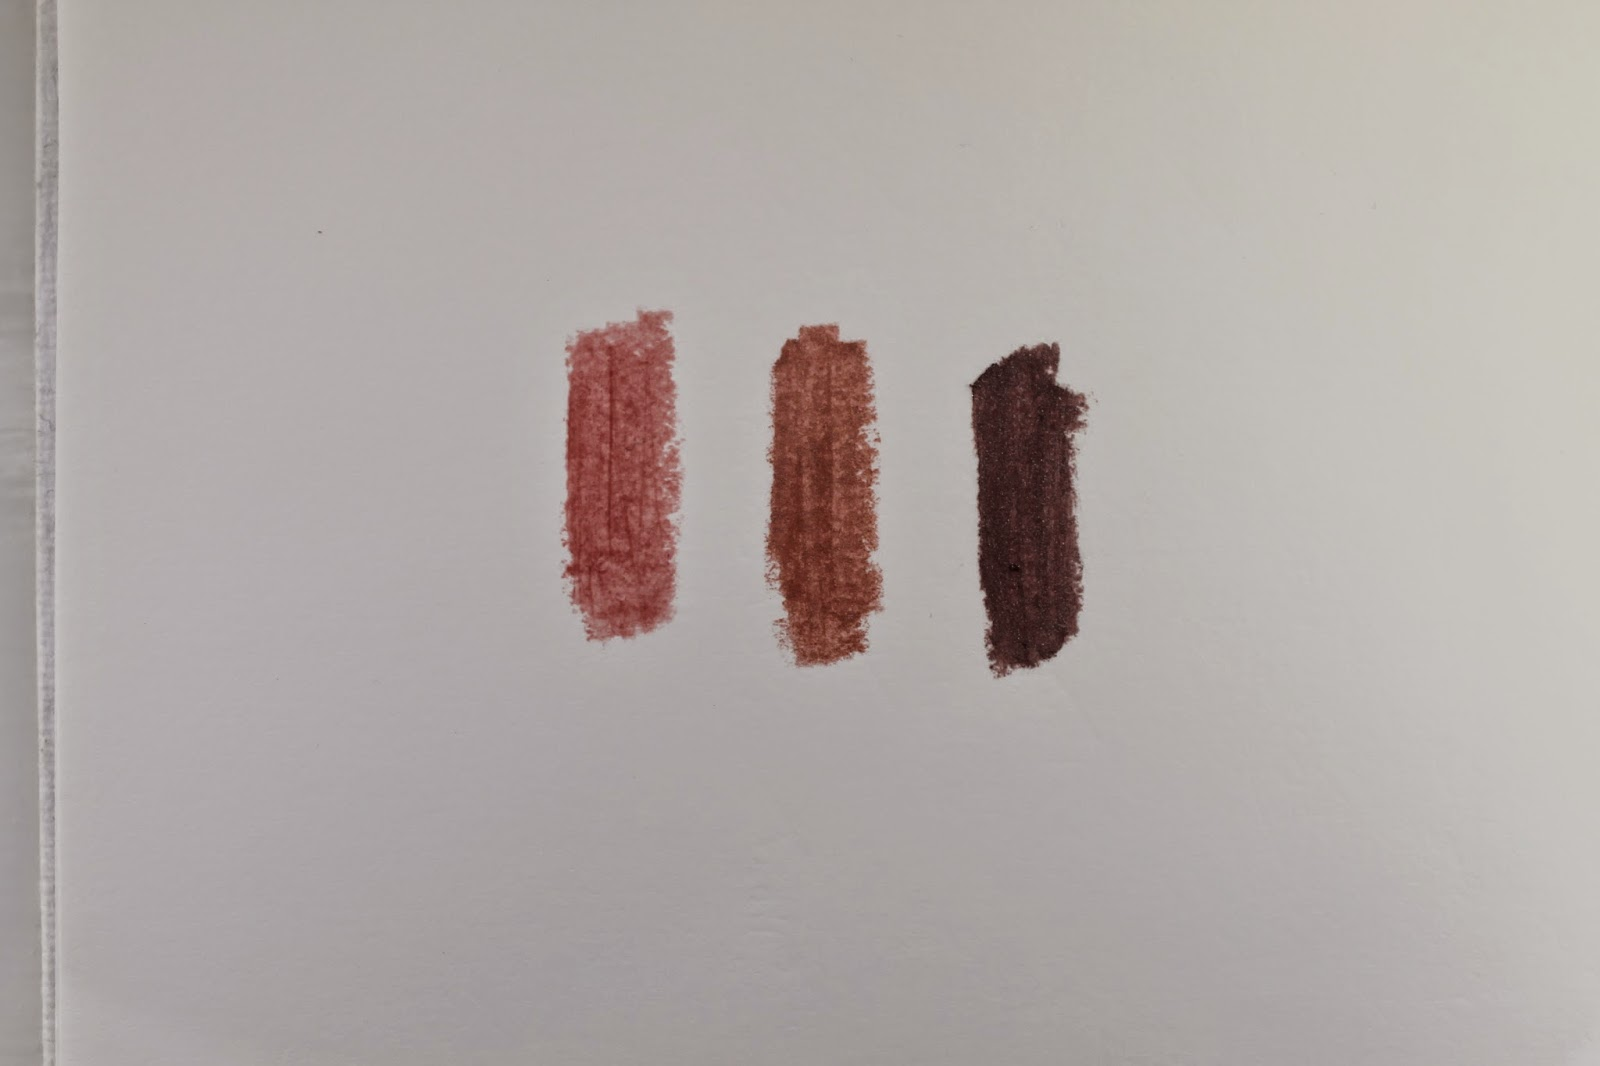 Bourjous Colorband Eyeshadow in 04 Rose Fauviste and 05 Mauve Baroque and Colorboost Lip Crayon in 07 Proudly Naked